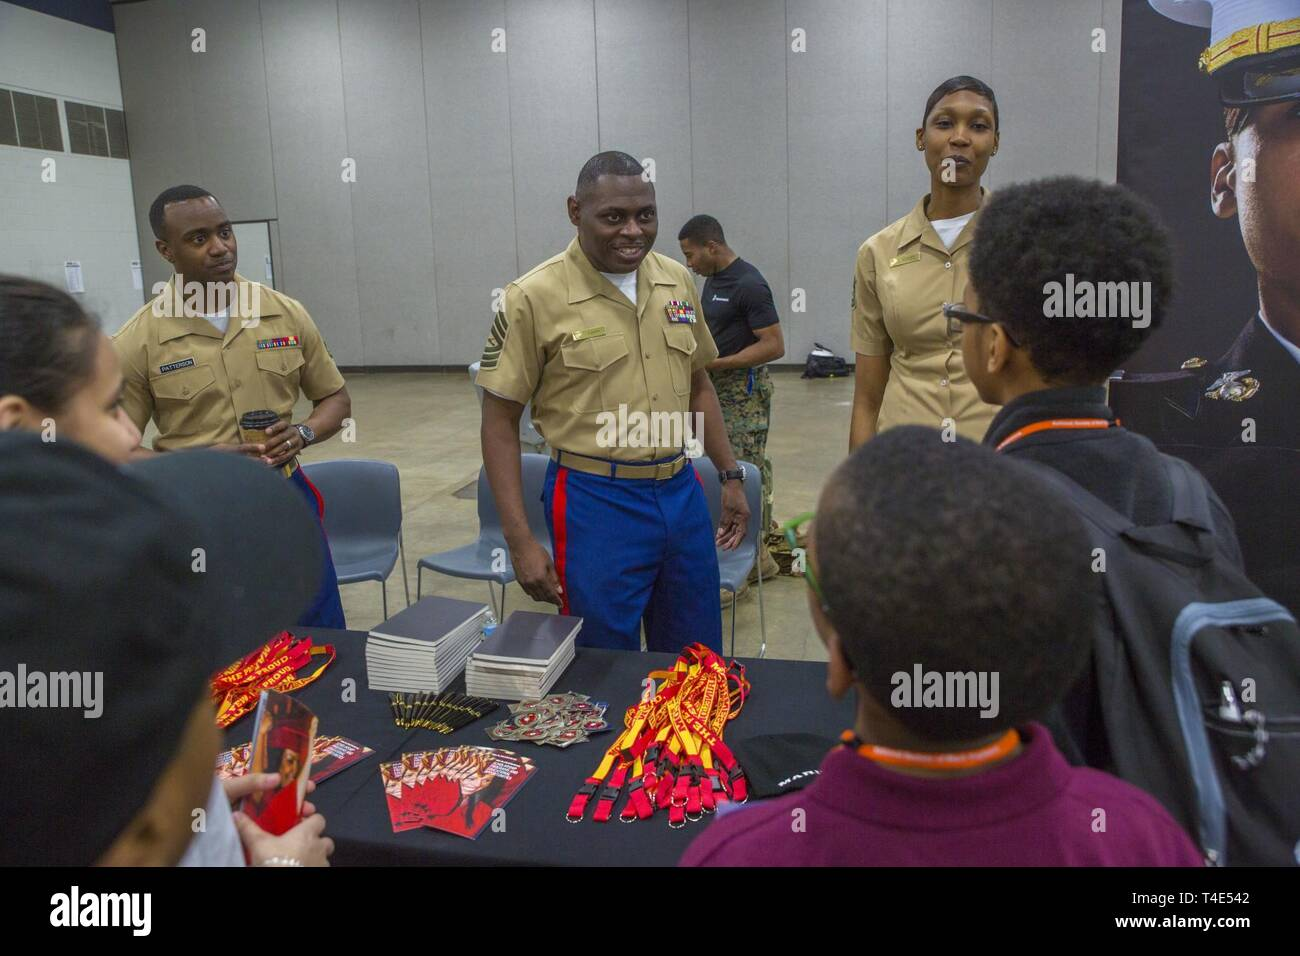 Marine Staff Sgt. Christopher Patterson, a recruiter from Recruiting Station Albuquerque, Master Sgt. Damian Cason, a career recruiter with the Marine Corps Recruiting Command, and Gunnery Sgt. Latyra Sayers, a career recruiter with Recruiting Station San Diego, draw connections between engineering in the Marine Corps and elsewhere to attendees of NSBE during a National Society of Black Engineers conference STEAMFest in Detroit, March 30, 2019. NSBE is holding its 45th annual national convention consisting of various programs and workshops that are designed to benefit grade school, collegiate, Stock Photo